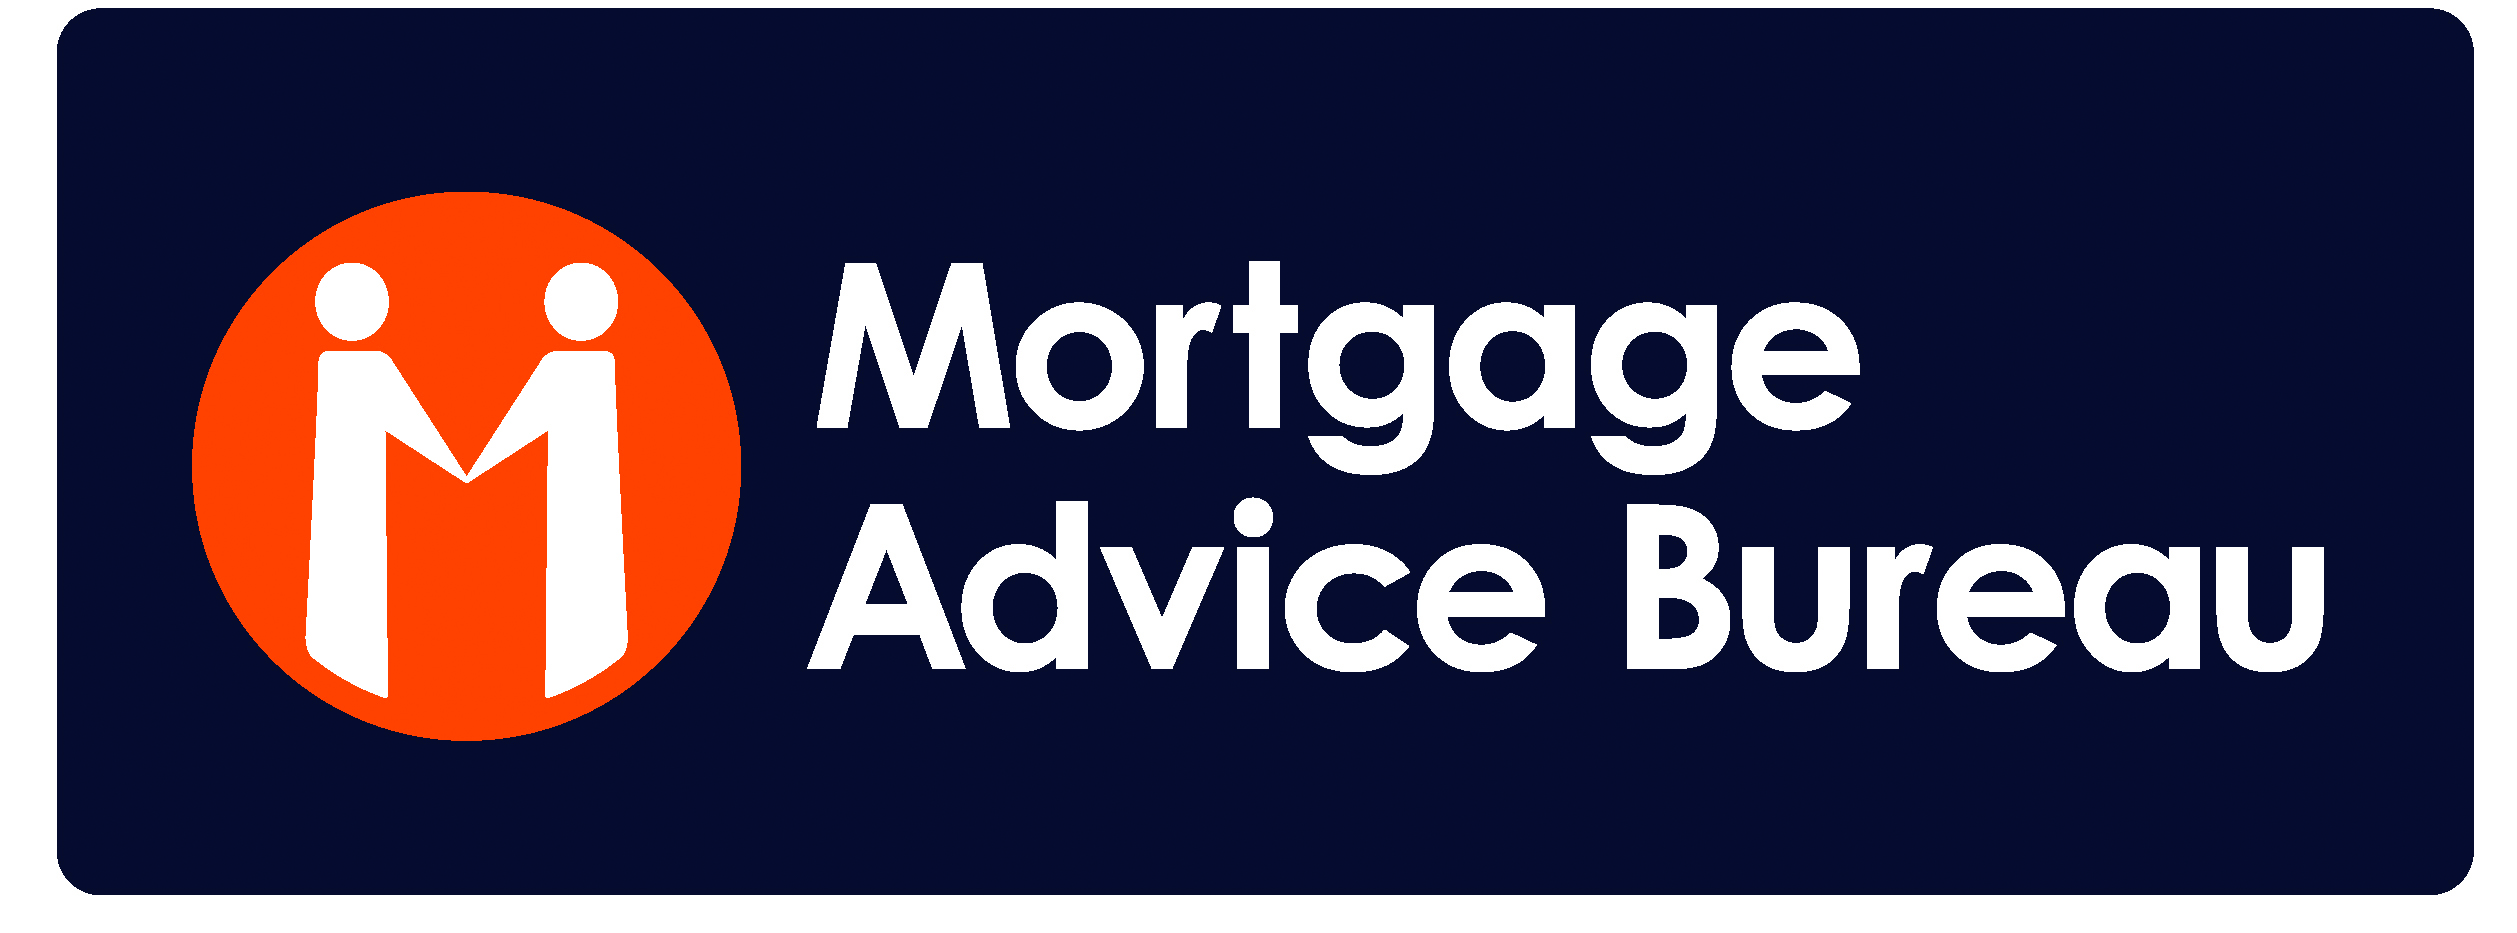 mortgage-advice-bureau-logo